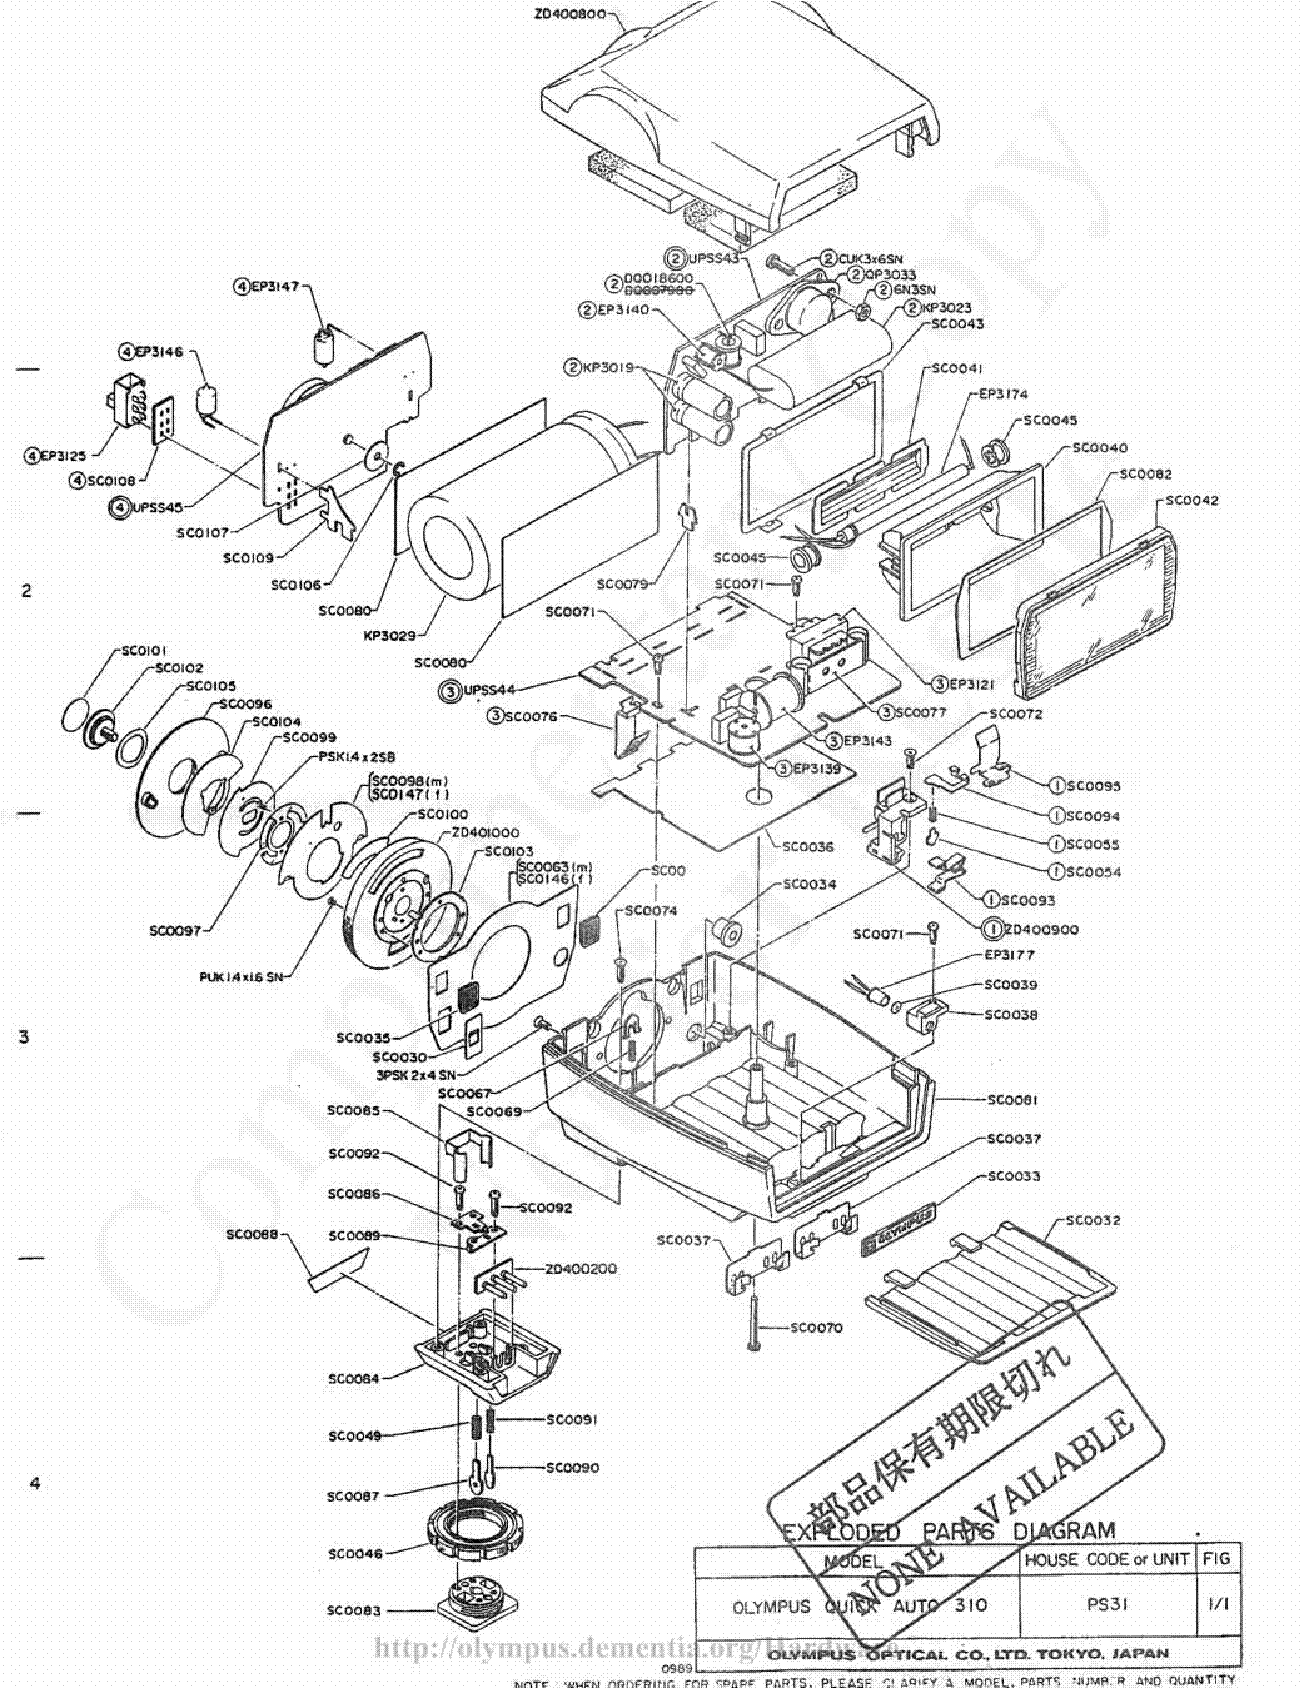 OLYMPUS QA310 EXPLODED PARTS DIAGRAM Service Manual